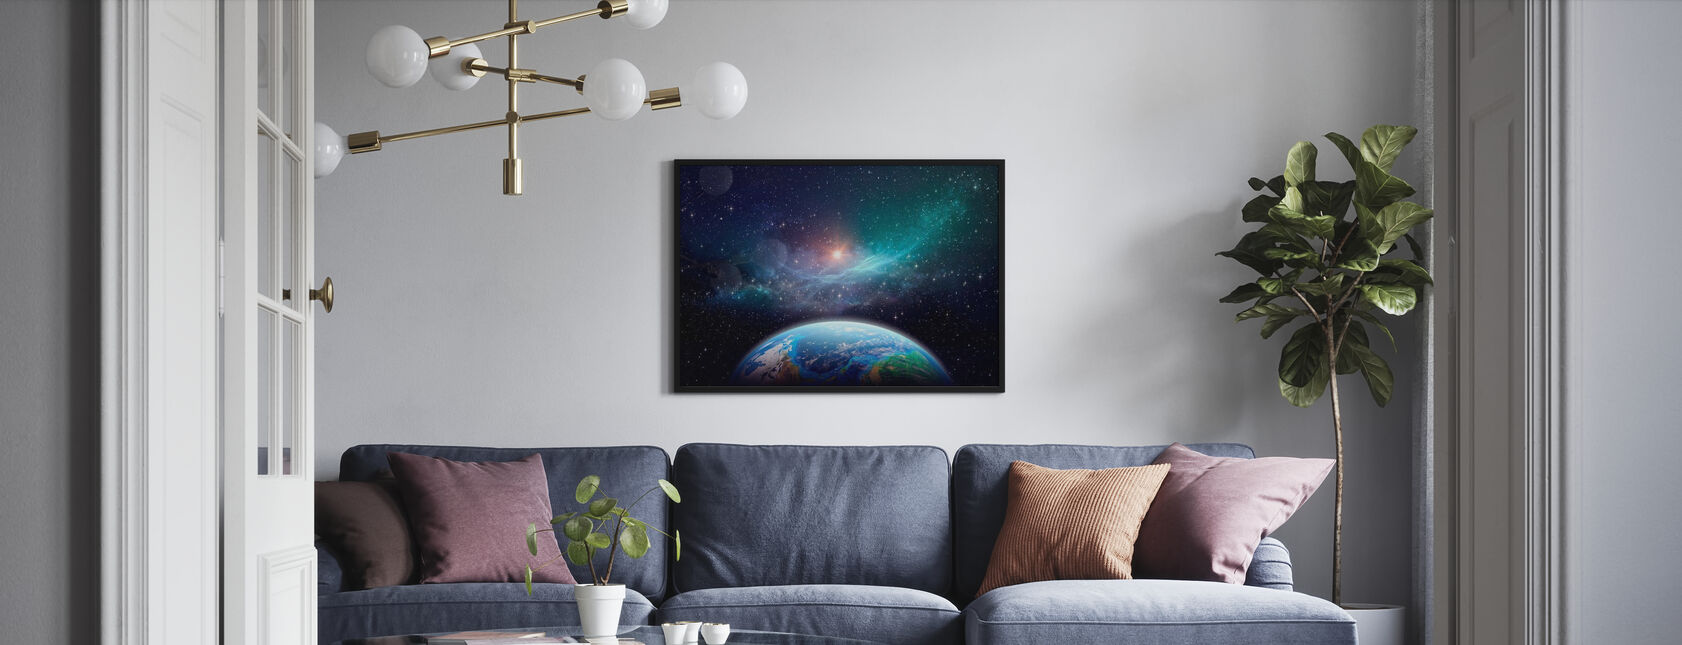 Exoplanet in Deep Space - Poster - Living Room